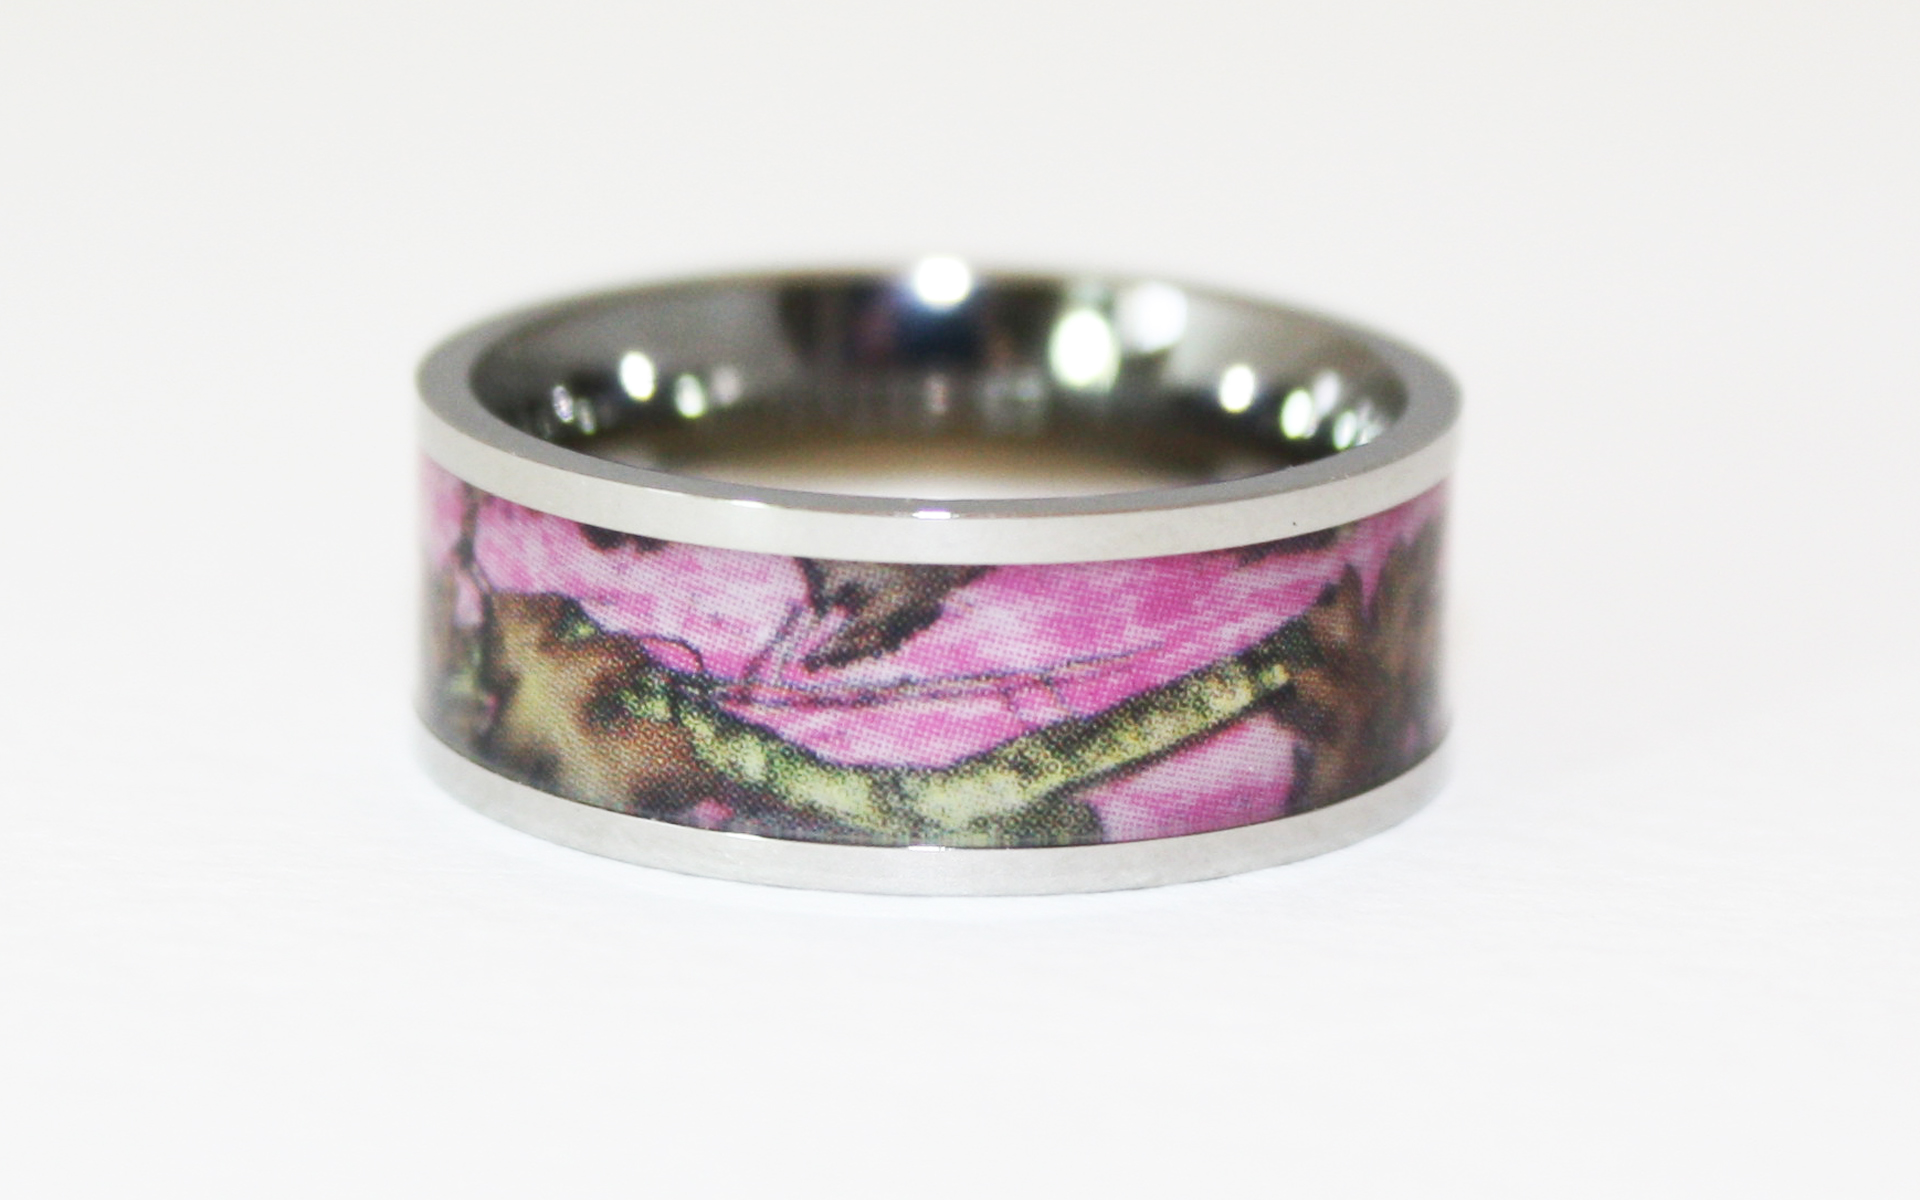 max size 1920 x 1200 - Pink Camo Wedding Rings For Her